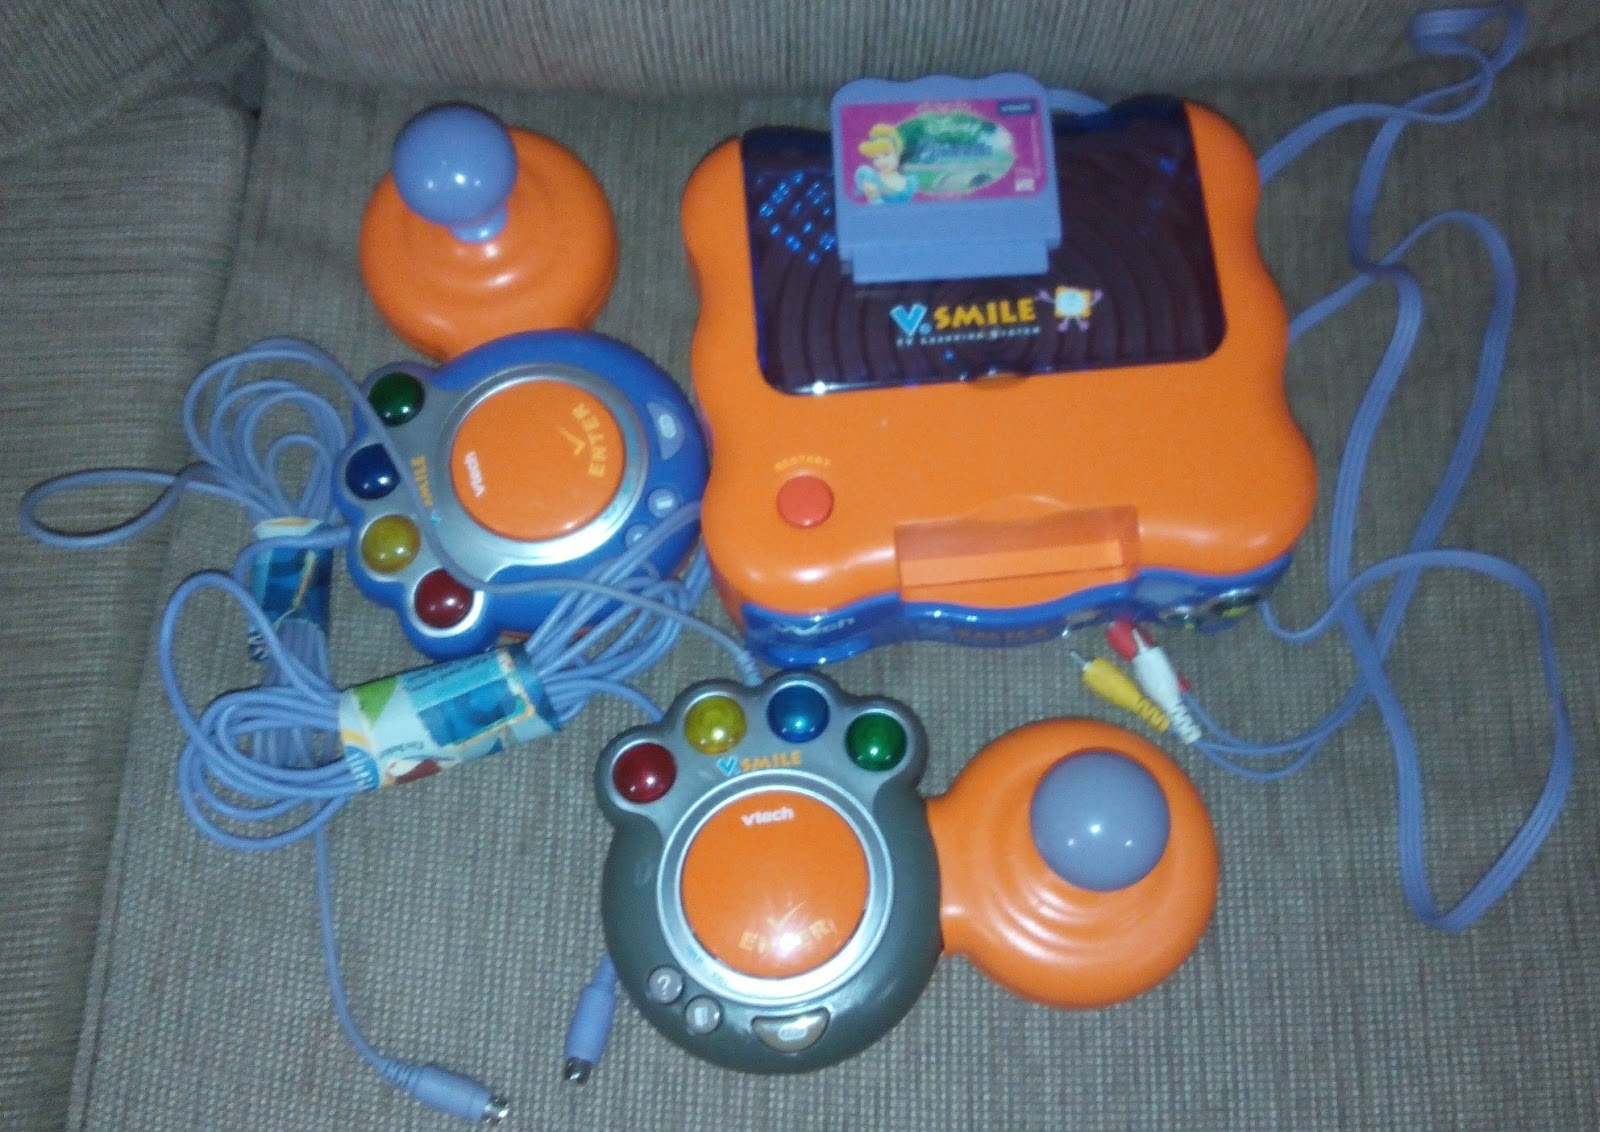 vtech v smile hook up Review of vsmile tv learning system by vtech  the vtech vsmile learning system is recommended for children ages 3-7  you can hook the system up with a .